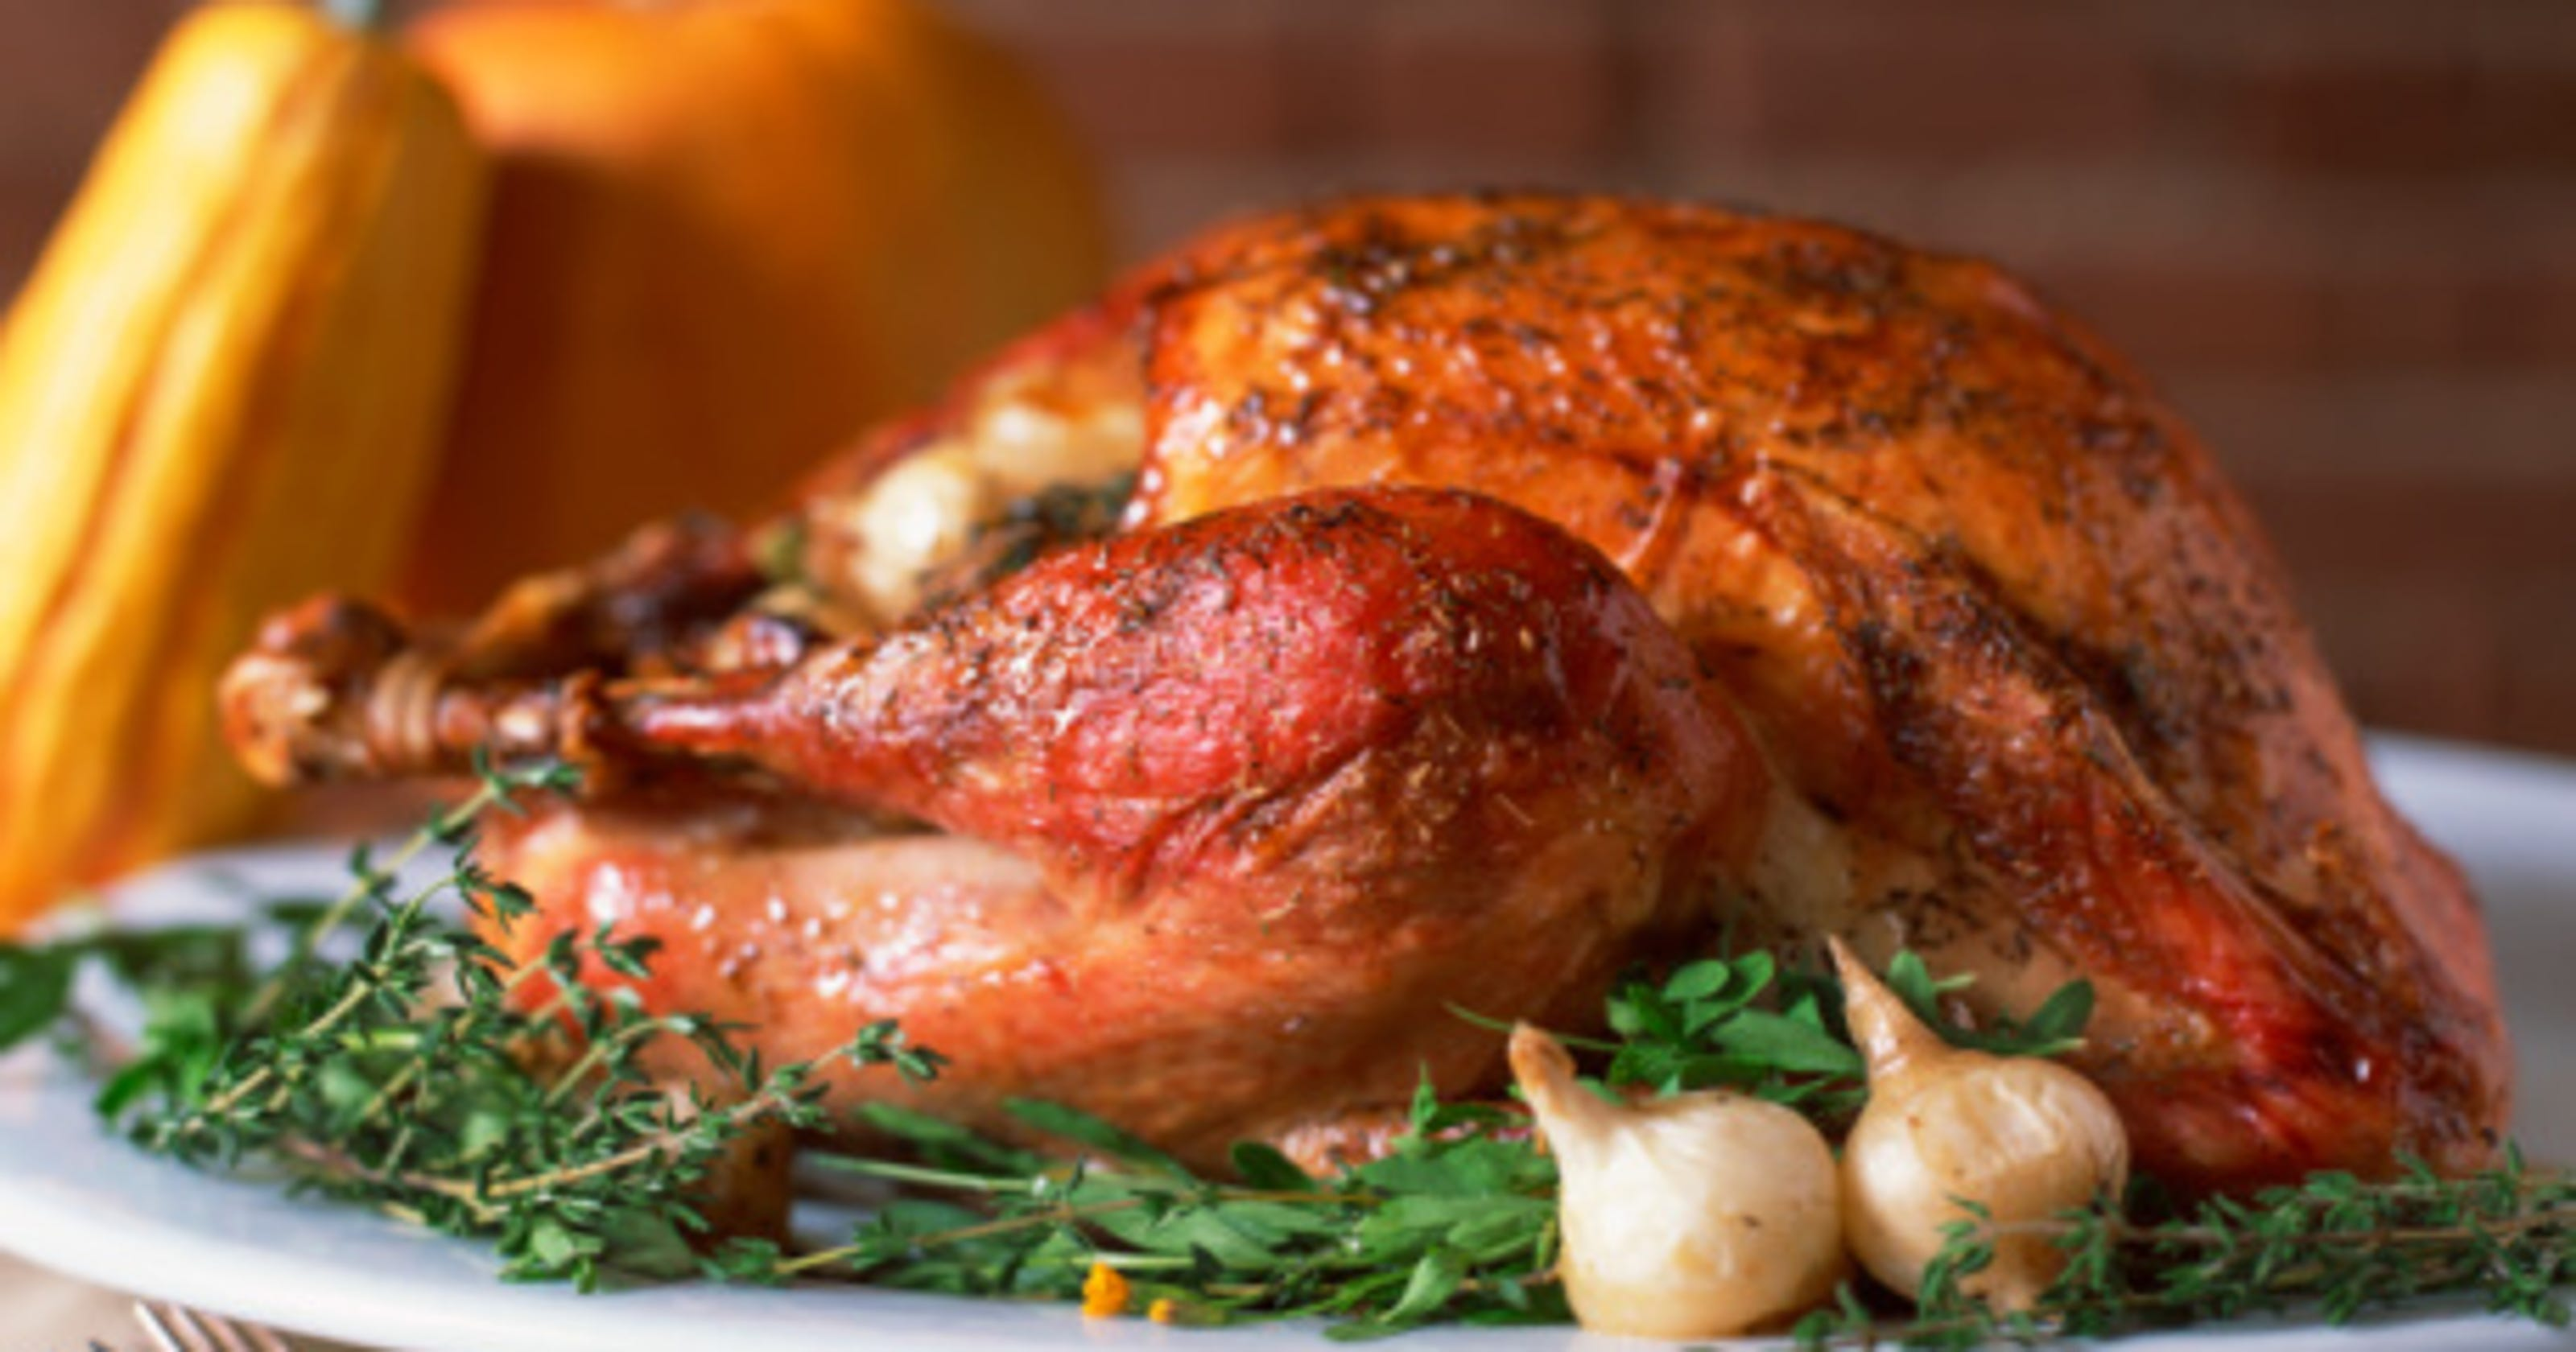 Turkey 101: Avoid making your guests sick this Thanksgiving